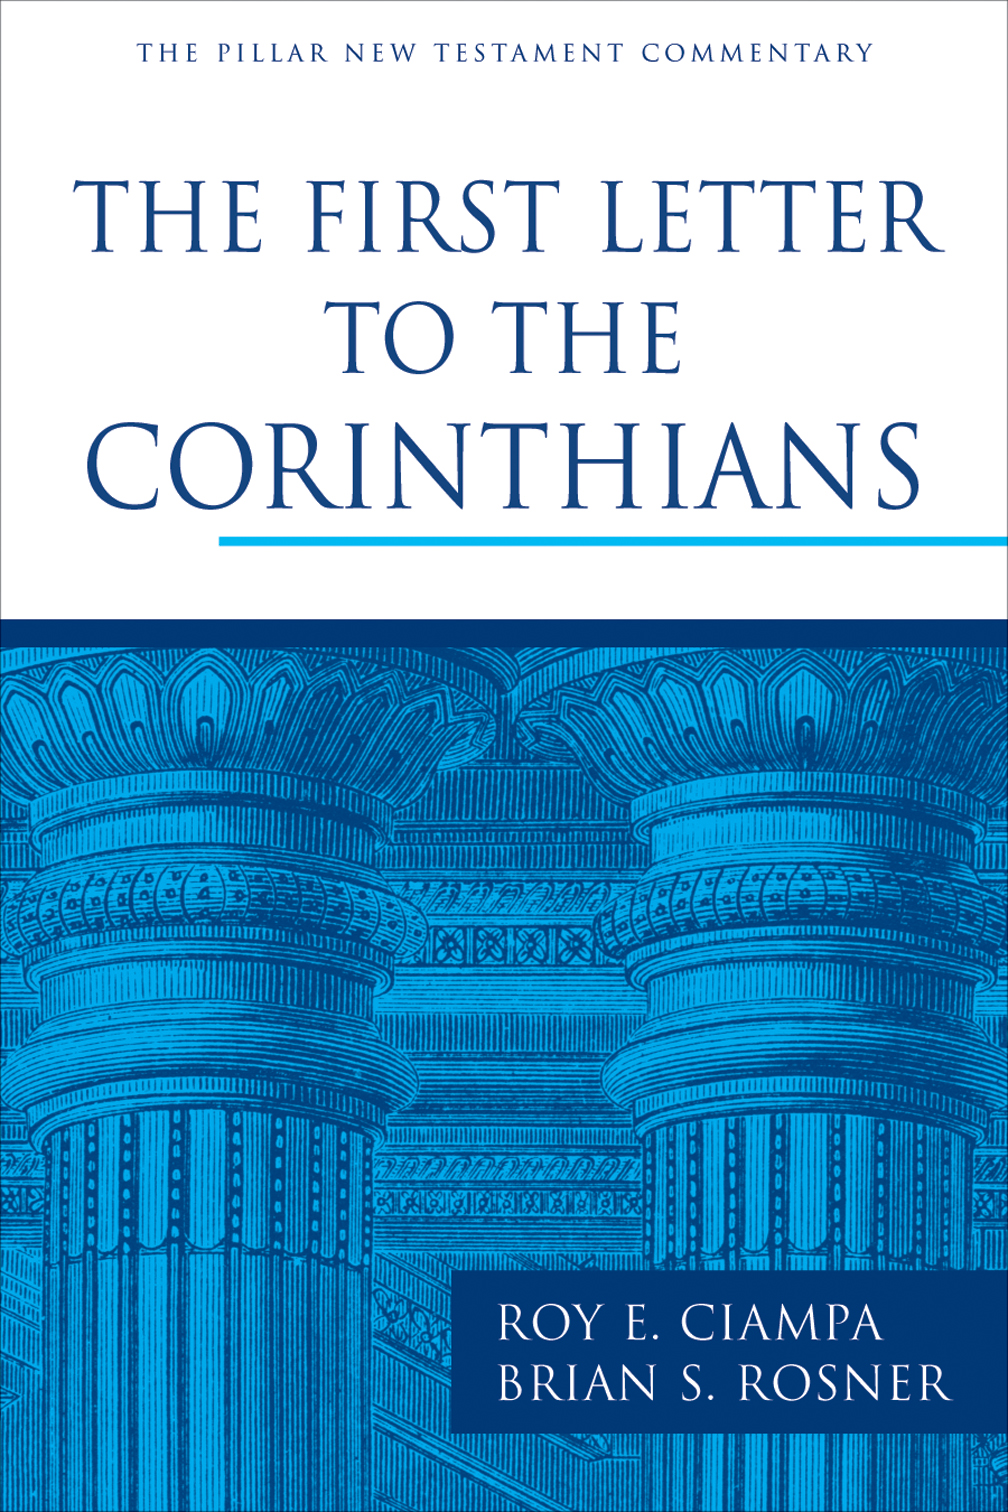 The First Letter to the Corinthians Pillar New Testament Commentary